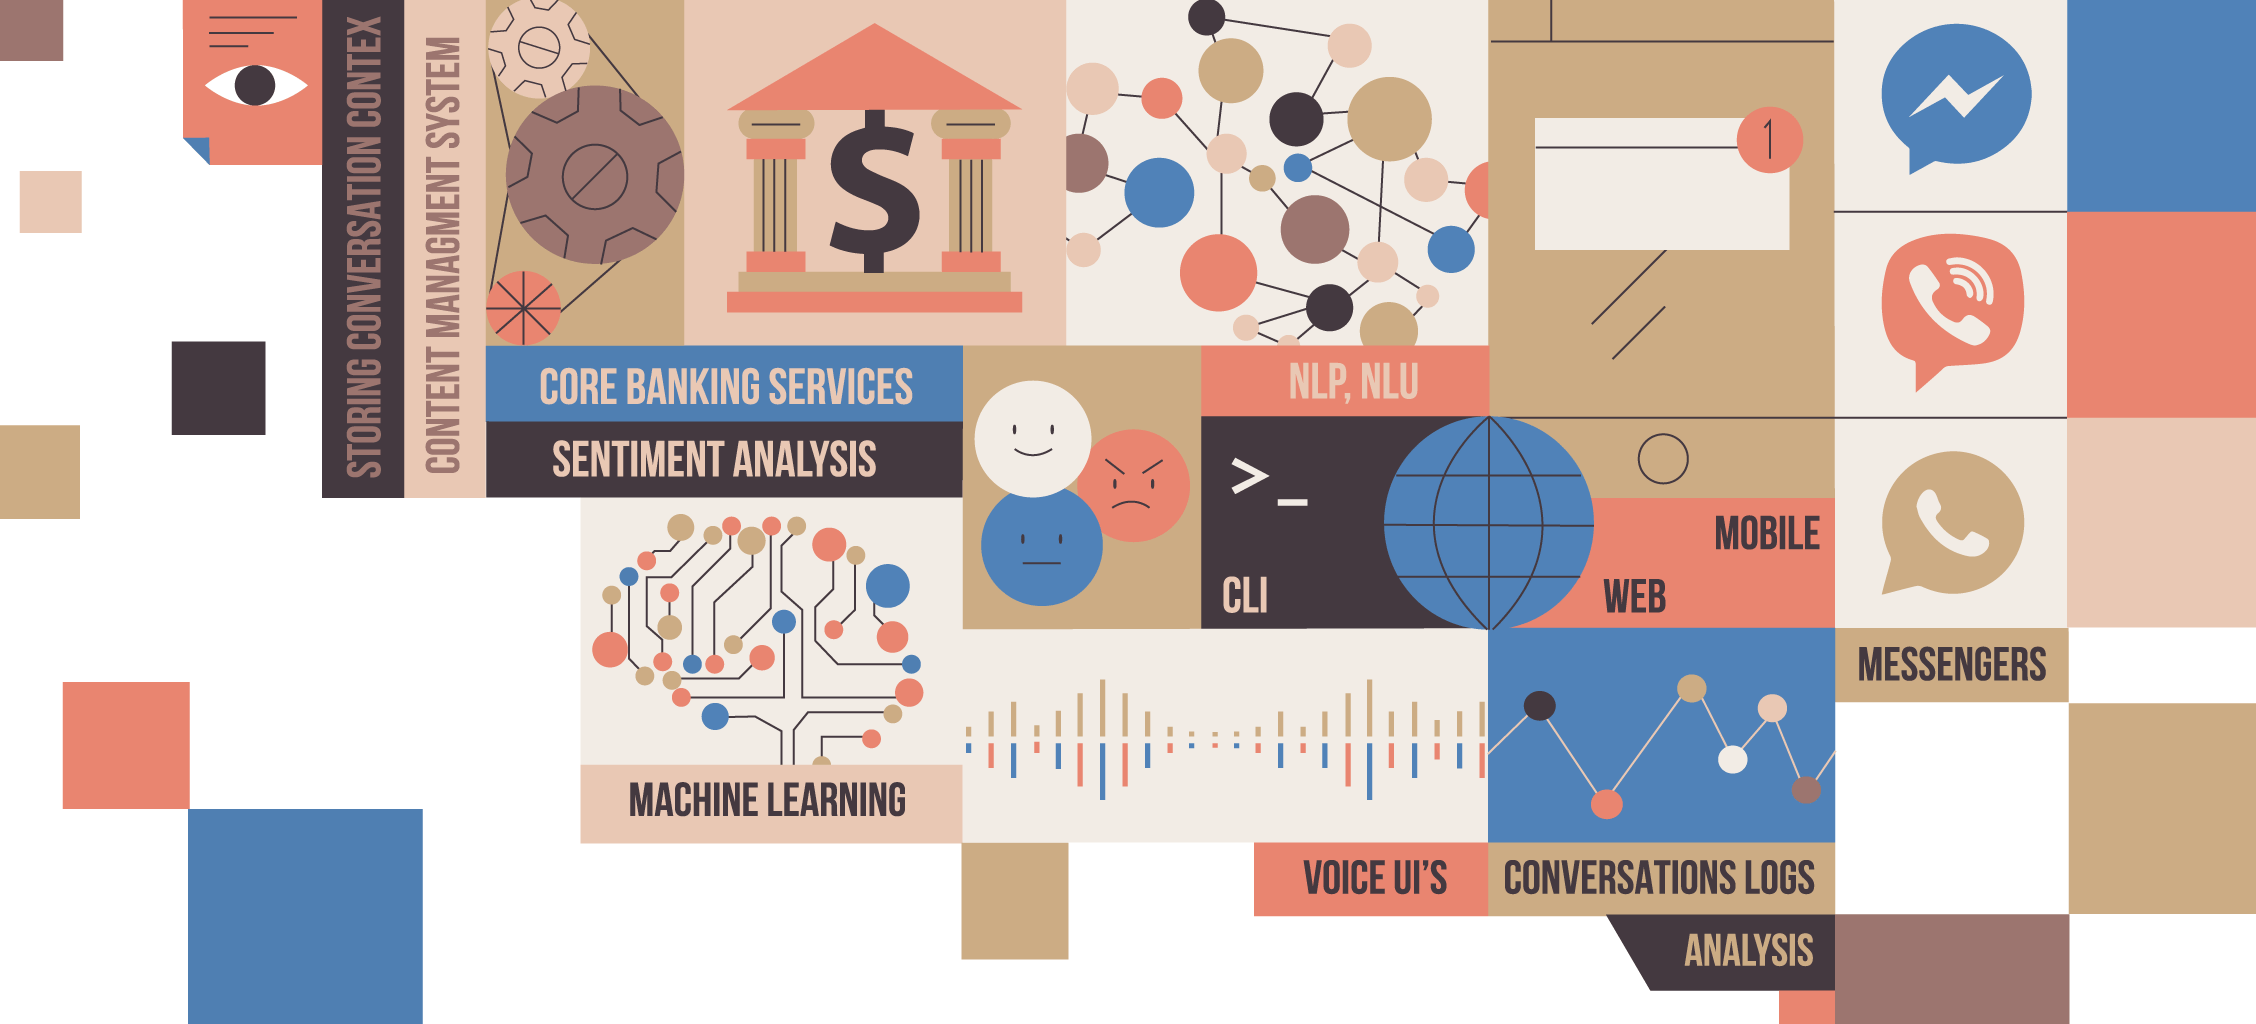 Conversational Banking: Going Beyond the AI Hype